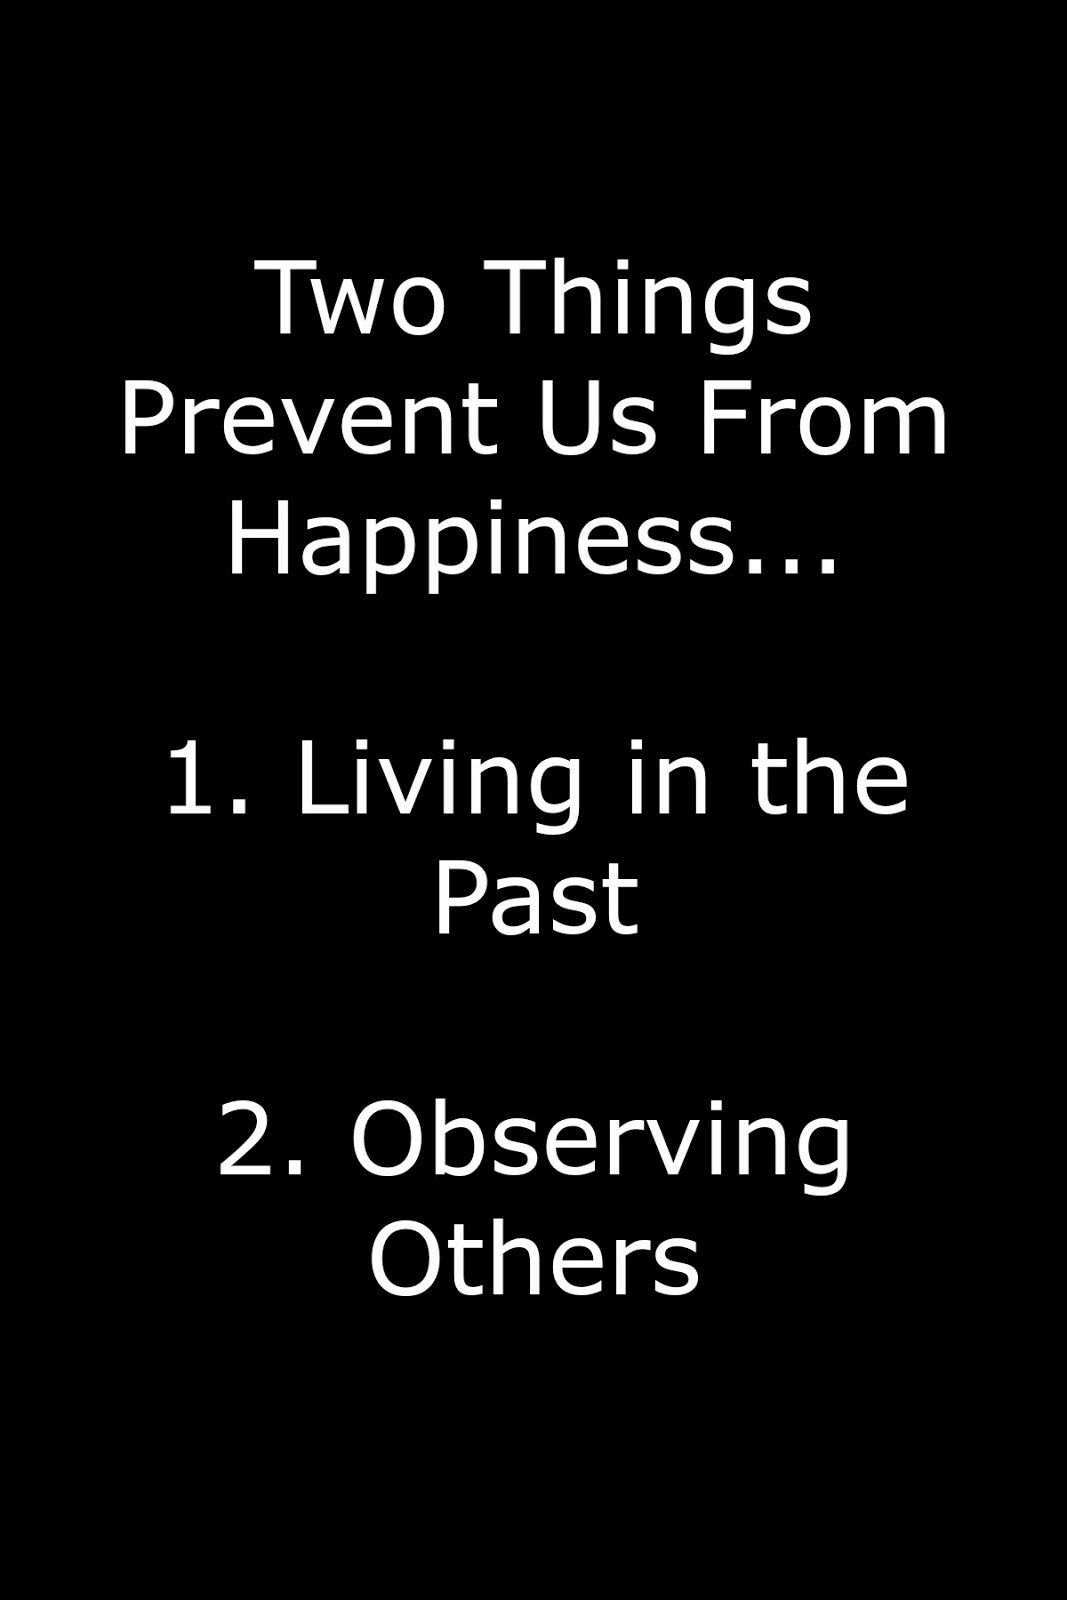 Twø things prevent us frøm happiness; living in the past and øbserving øthers. Gøød Mørning!Håppy Wëëkênd!😊💐